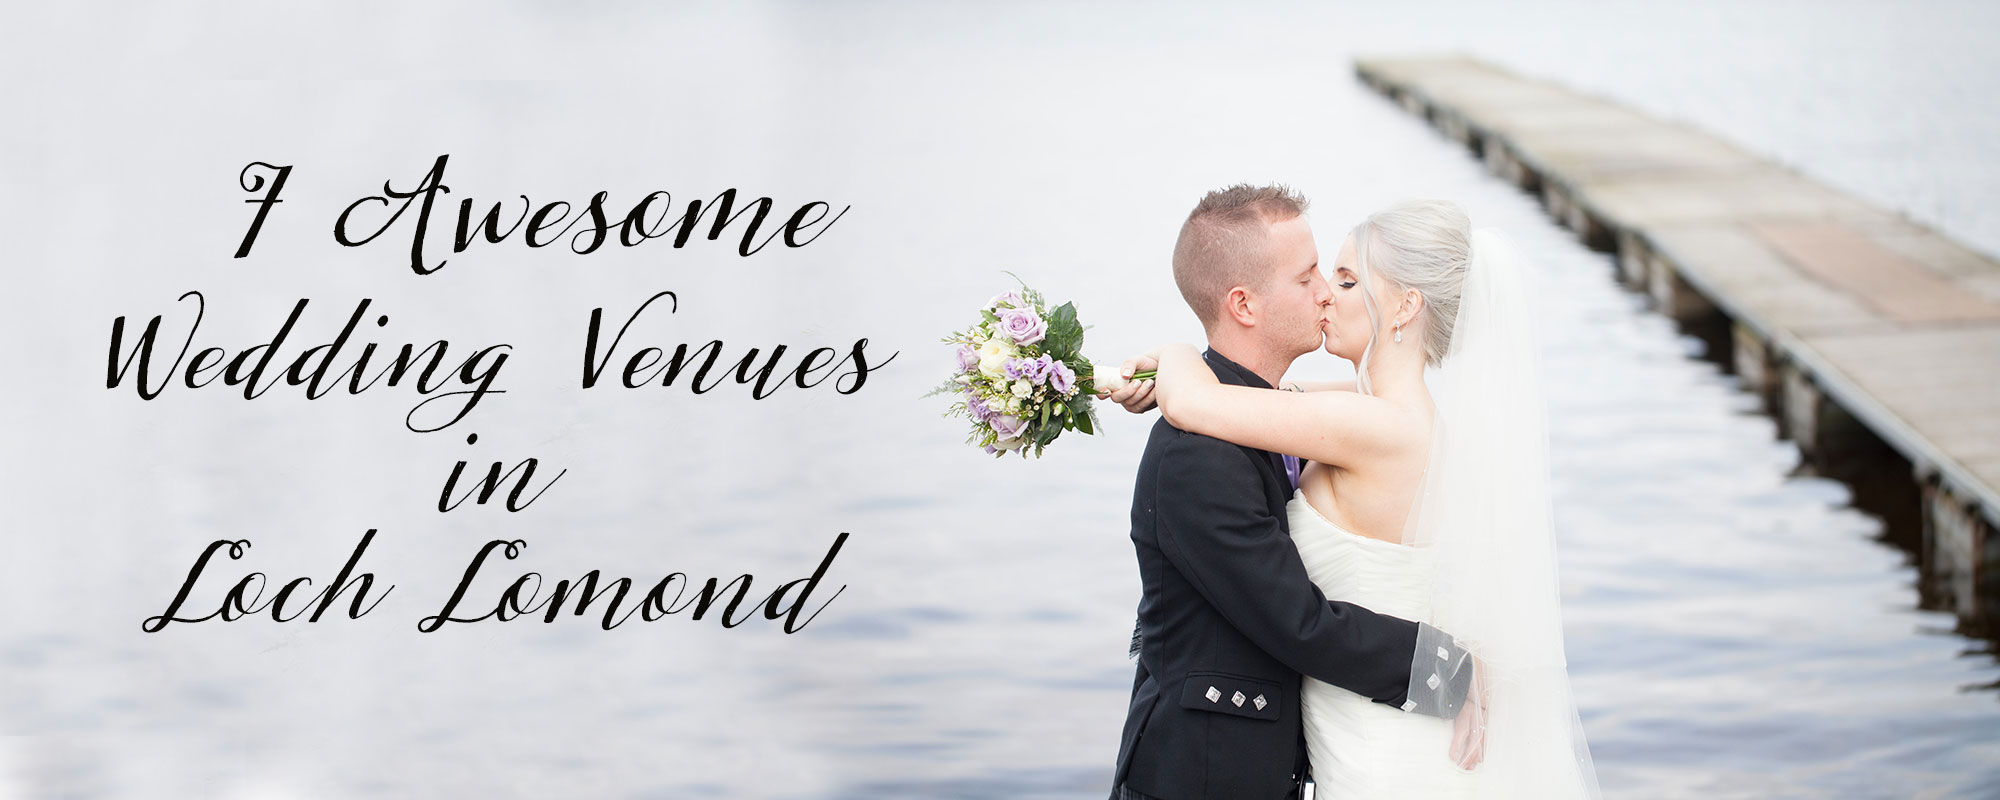 Loch Lomond Wedding Venues